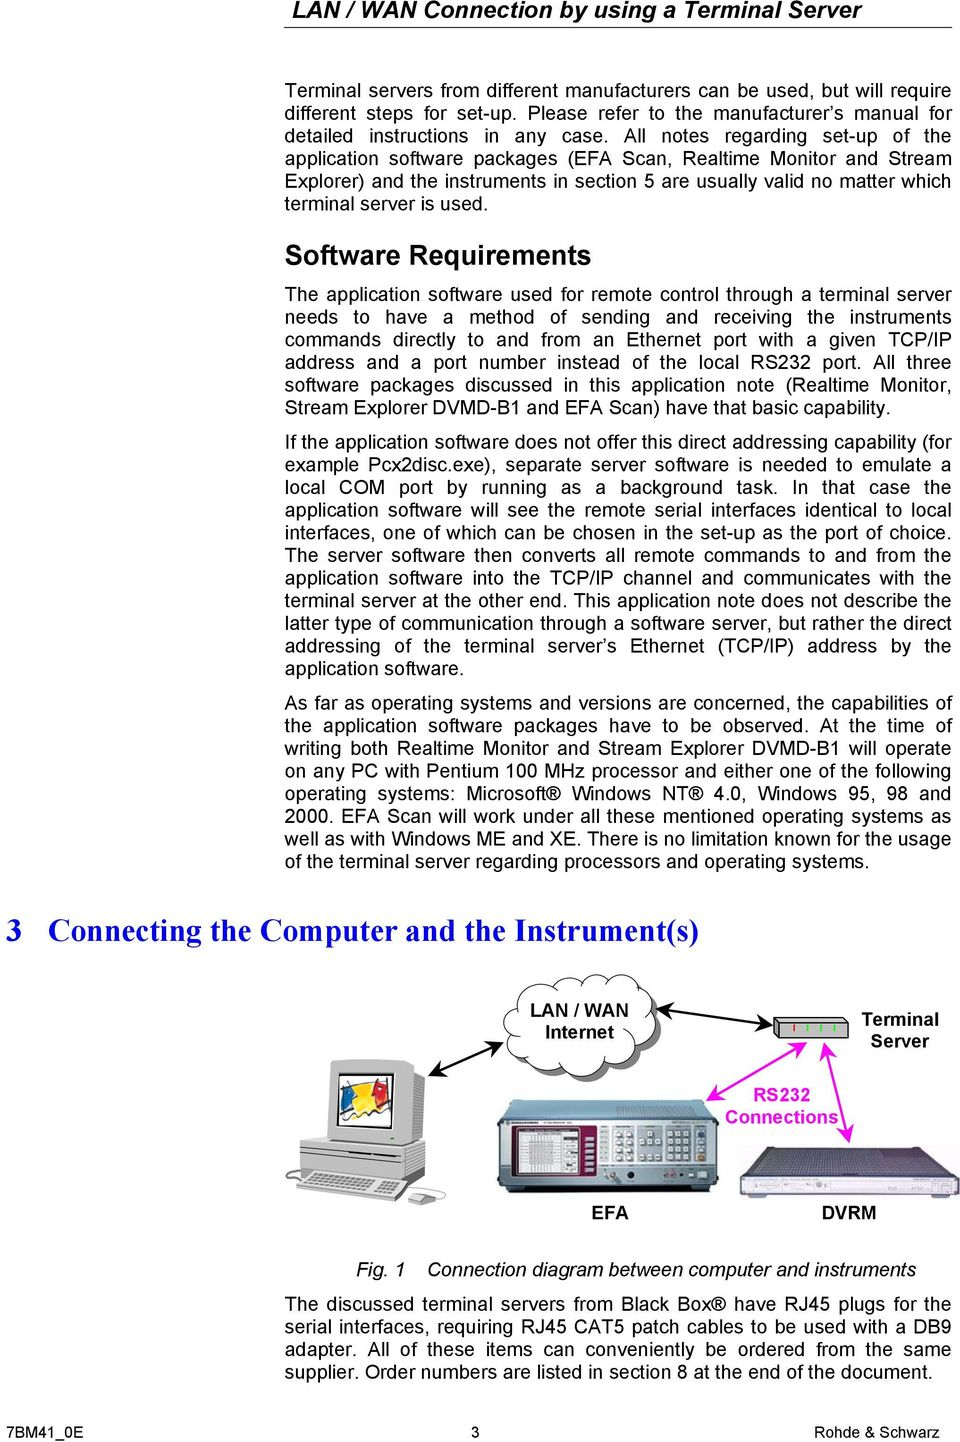 used. Software Requirements The application software used for remote control through a terminal server needs to have a method of sending and receiving the instruments commands directly to and from an